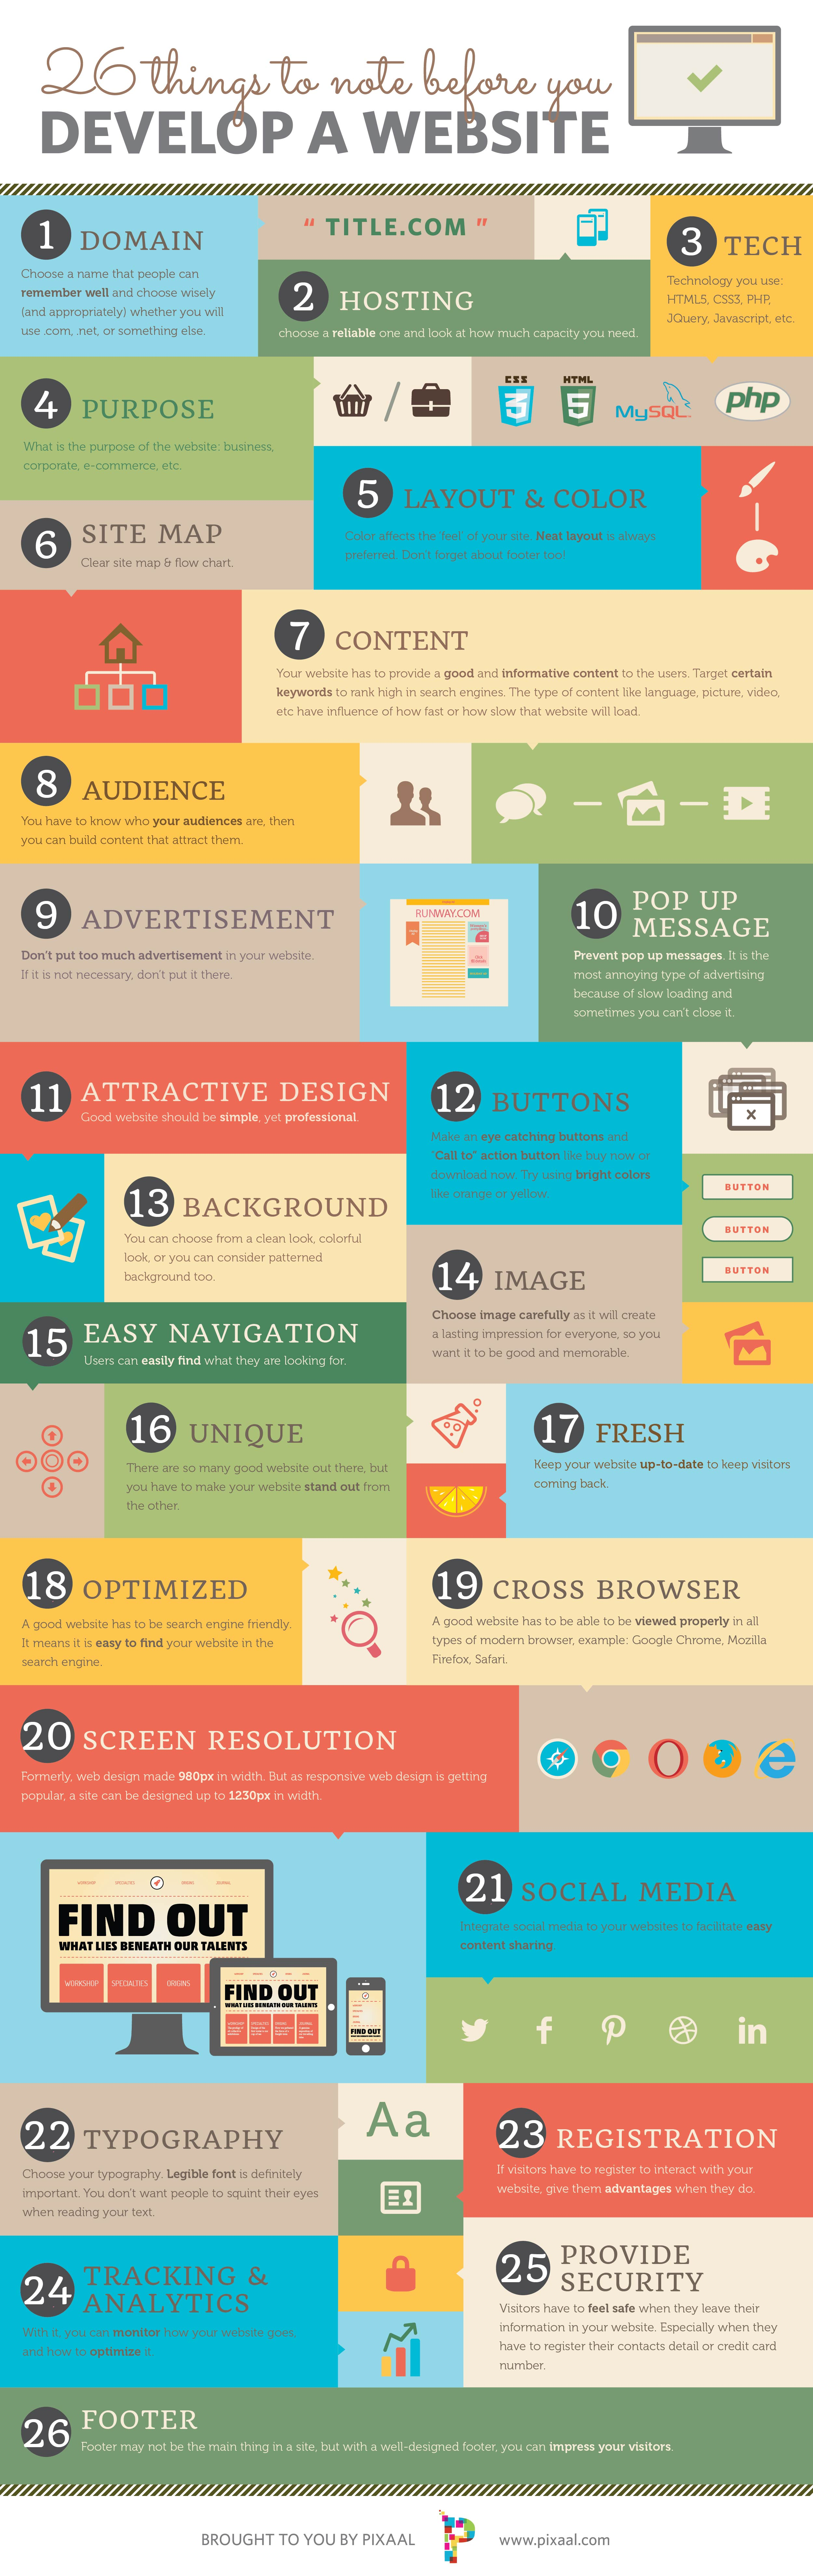 26-things-to-note-before-you-develop-a-website_515baf9549142-2